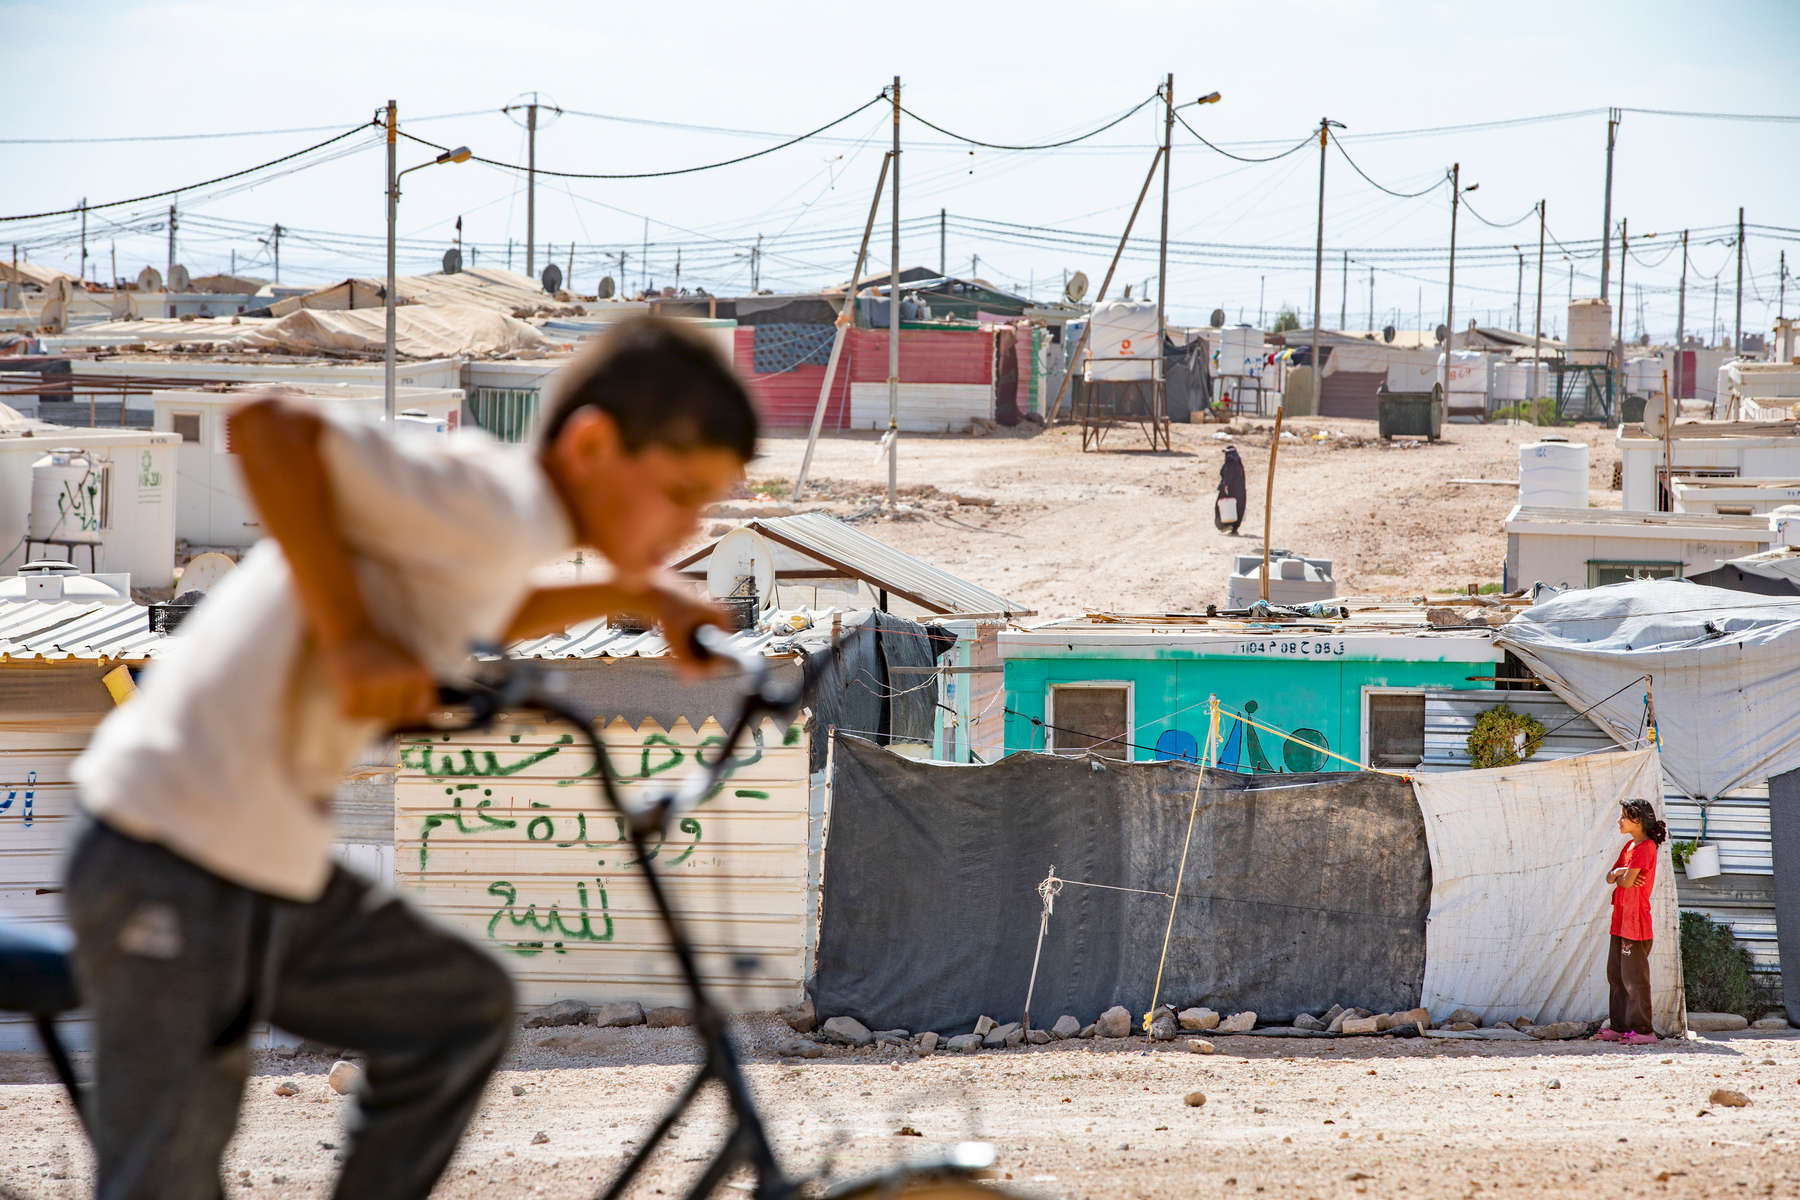 Children play on the outskirts of Zaatari refugee camp. Mercy Corps operates a safe space inside Zaatari, where Syrian refugees learn about healthy parenting strategies and make traditional Syrian crafts that help them stay connected to their home. The space, which features a playground, garden, soccer field, and classrooms, gives adults and children a safe place to stay in the middle of the dusty camp.